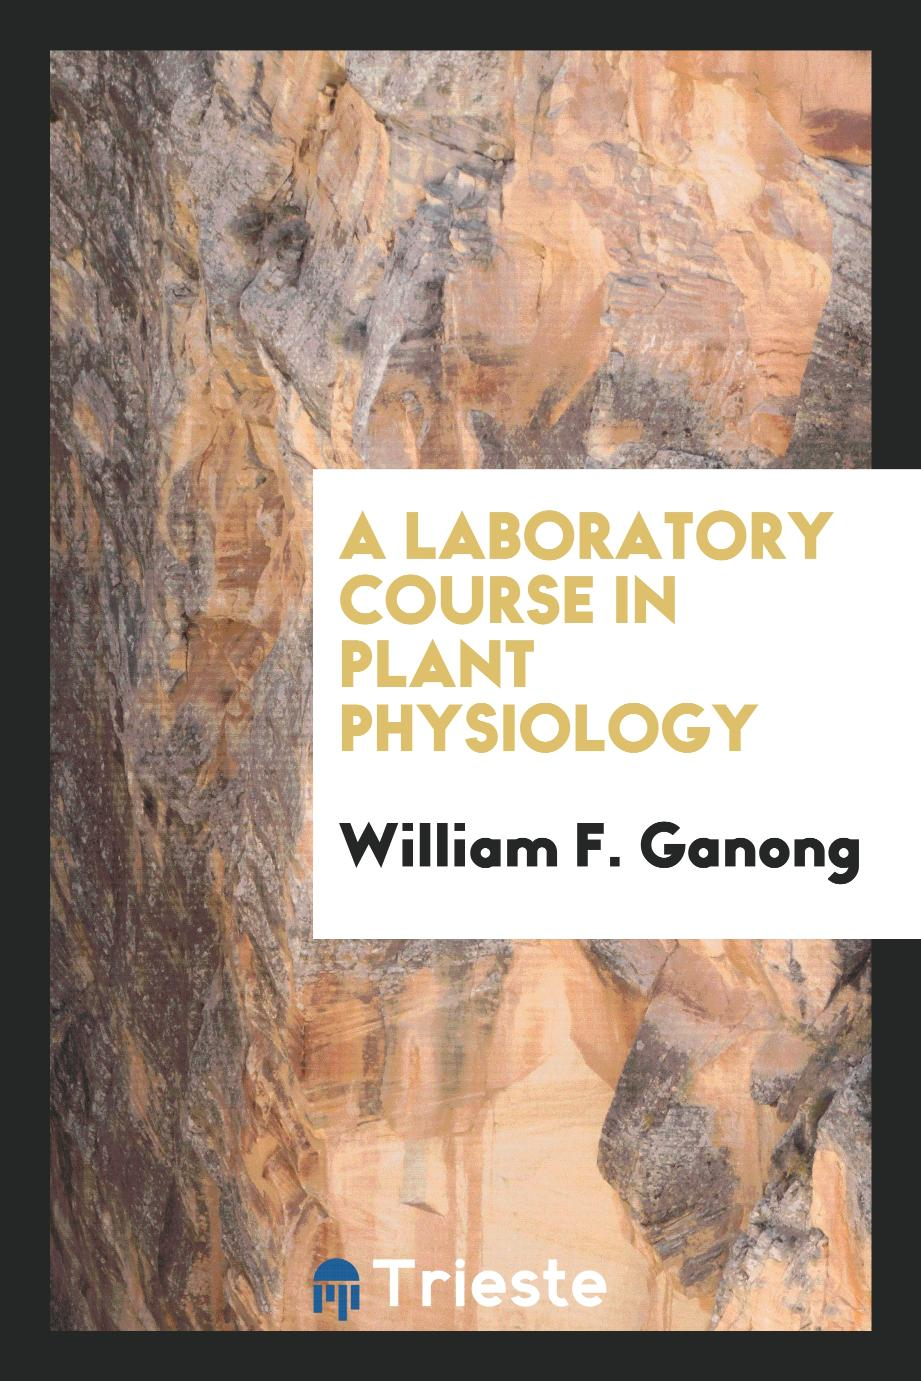 A laboratory course in plant physiology